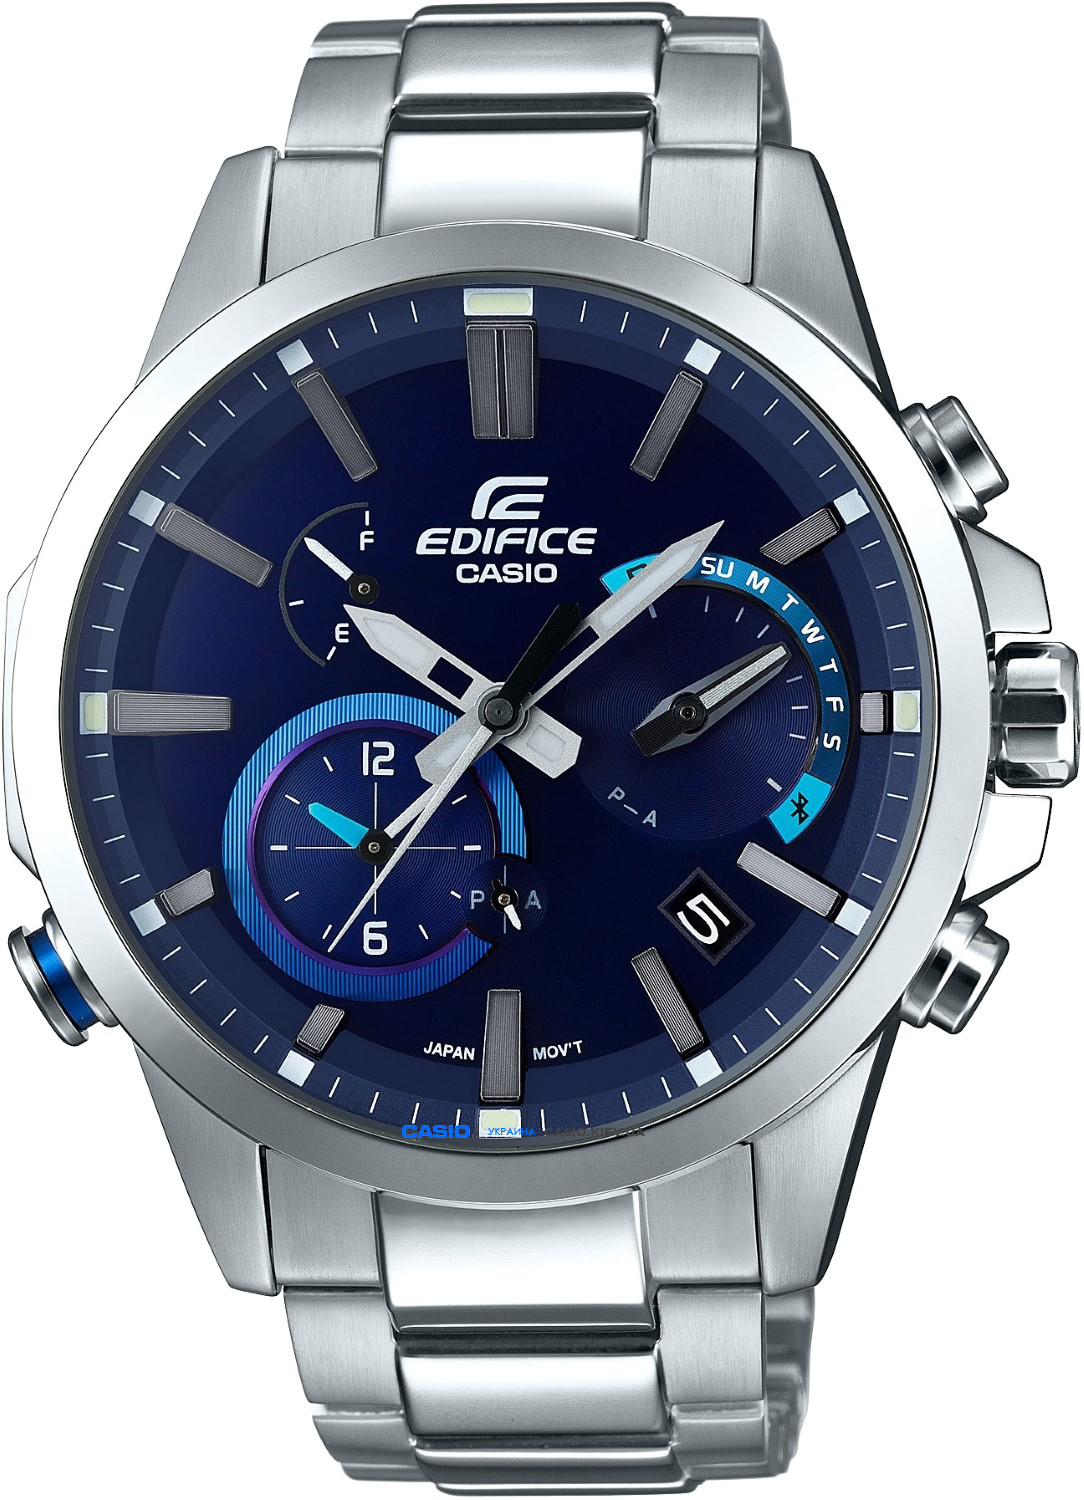 EQB-700D-2AER, Casio Edifice